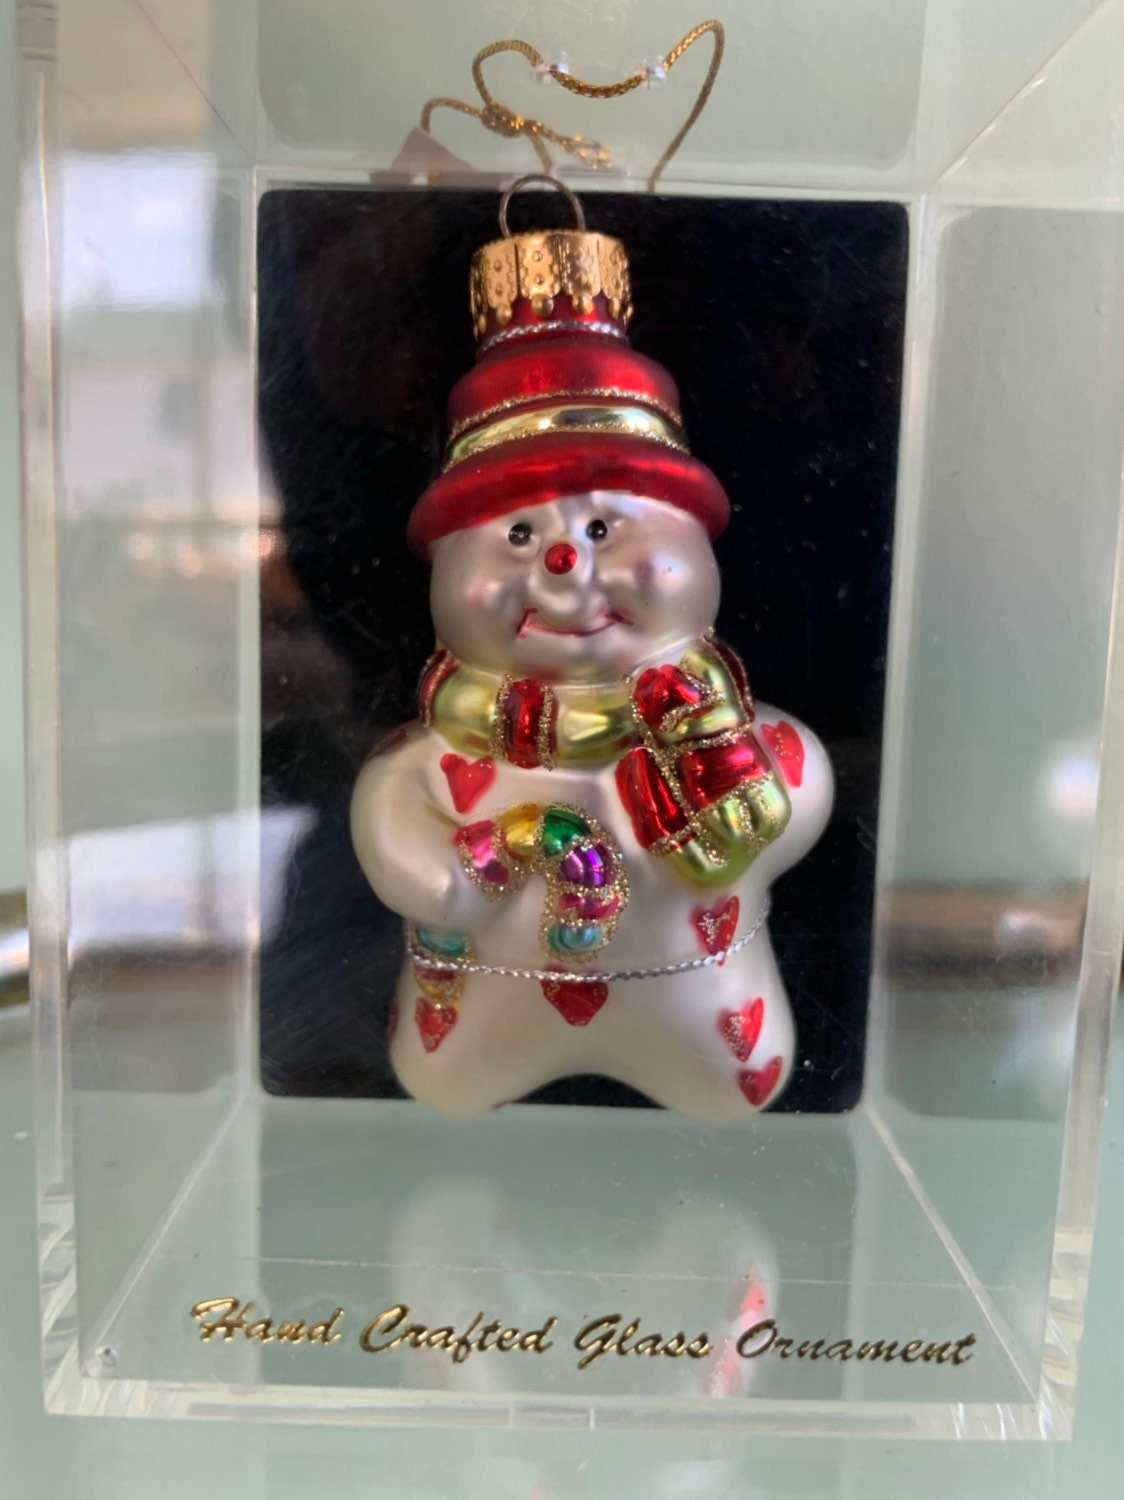 90s Christmas Tree Decorations.Vintage 90s Handcrafted Glass Snowman Christmas Ornament